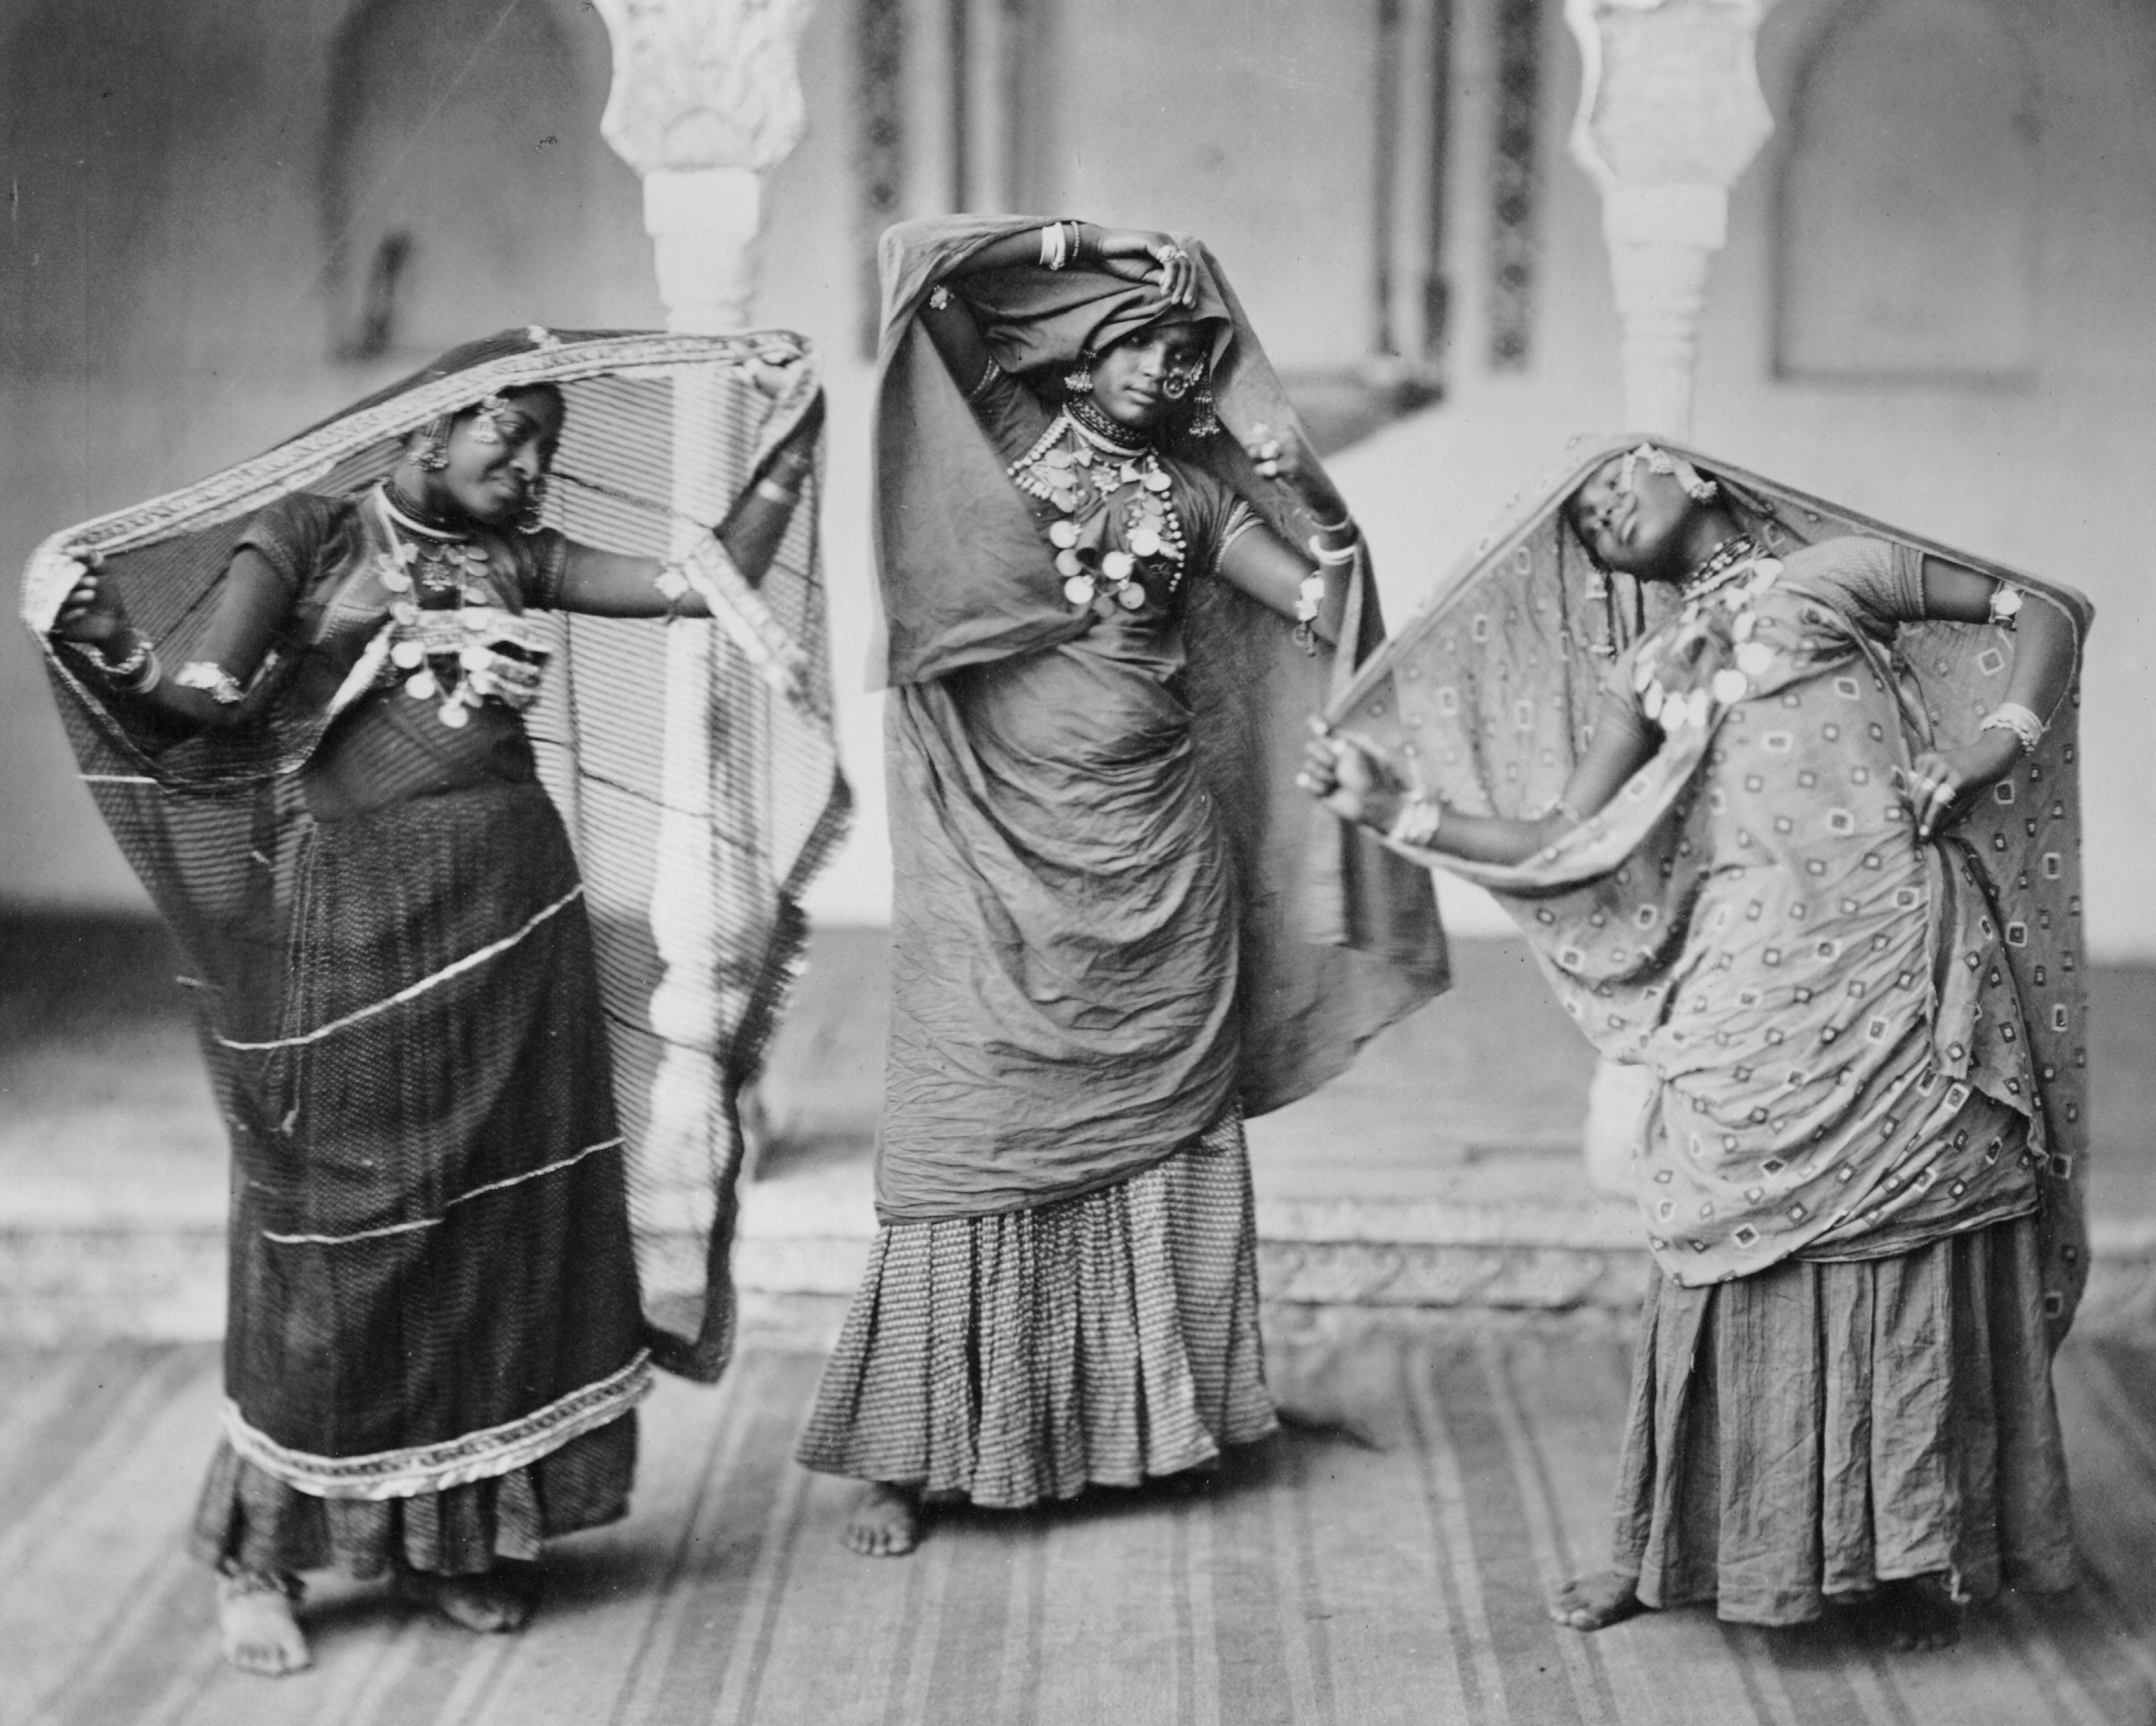 A photograph of three nautch dancers performing together